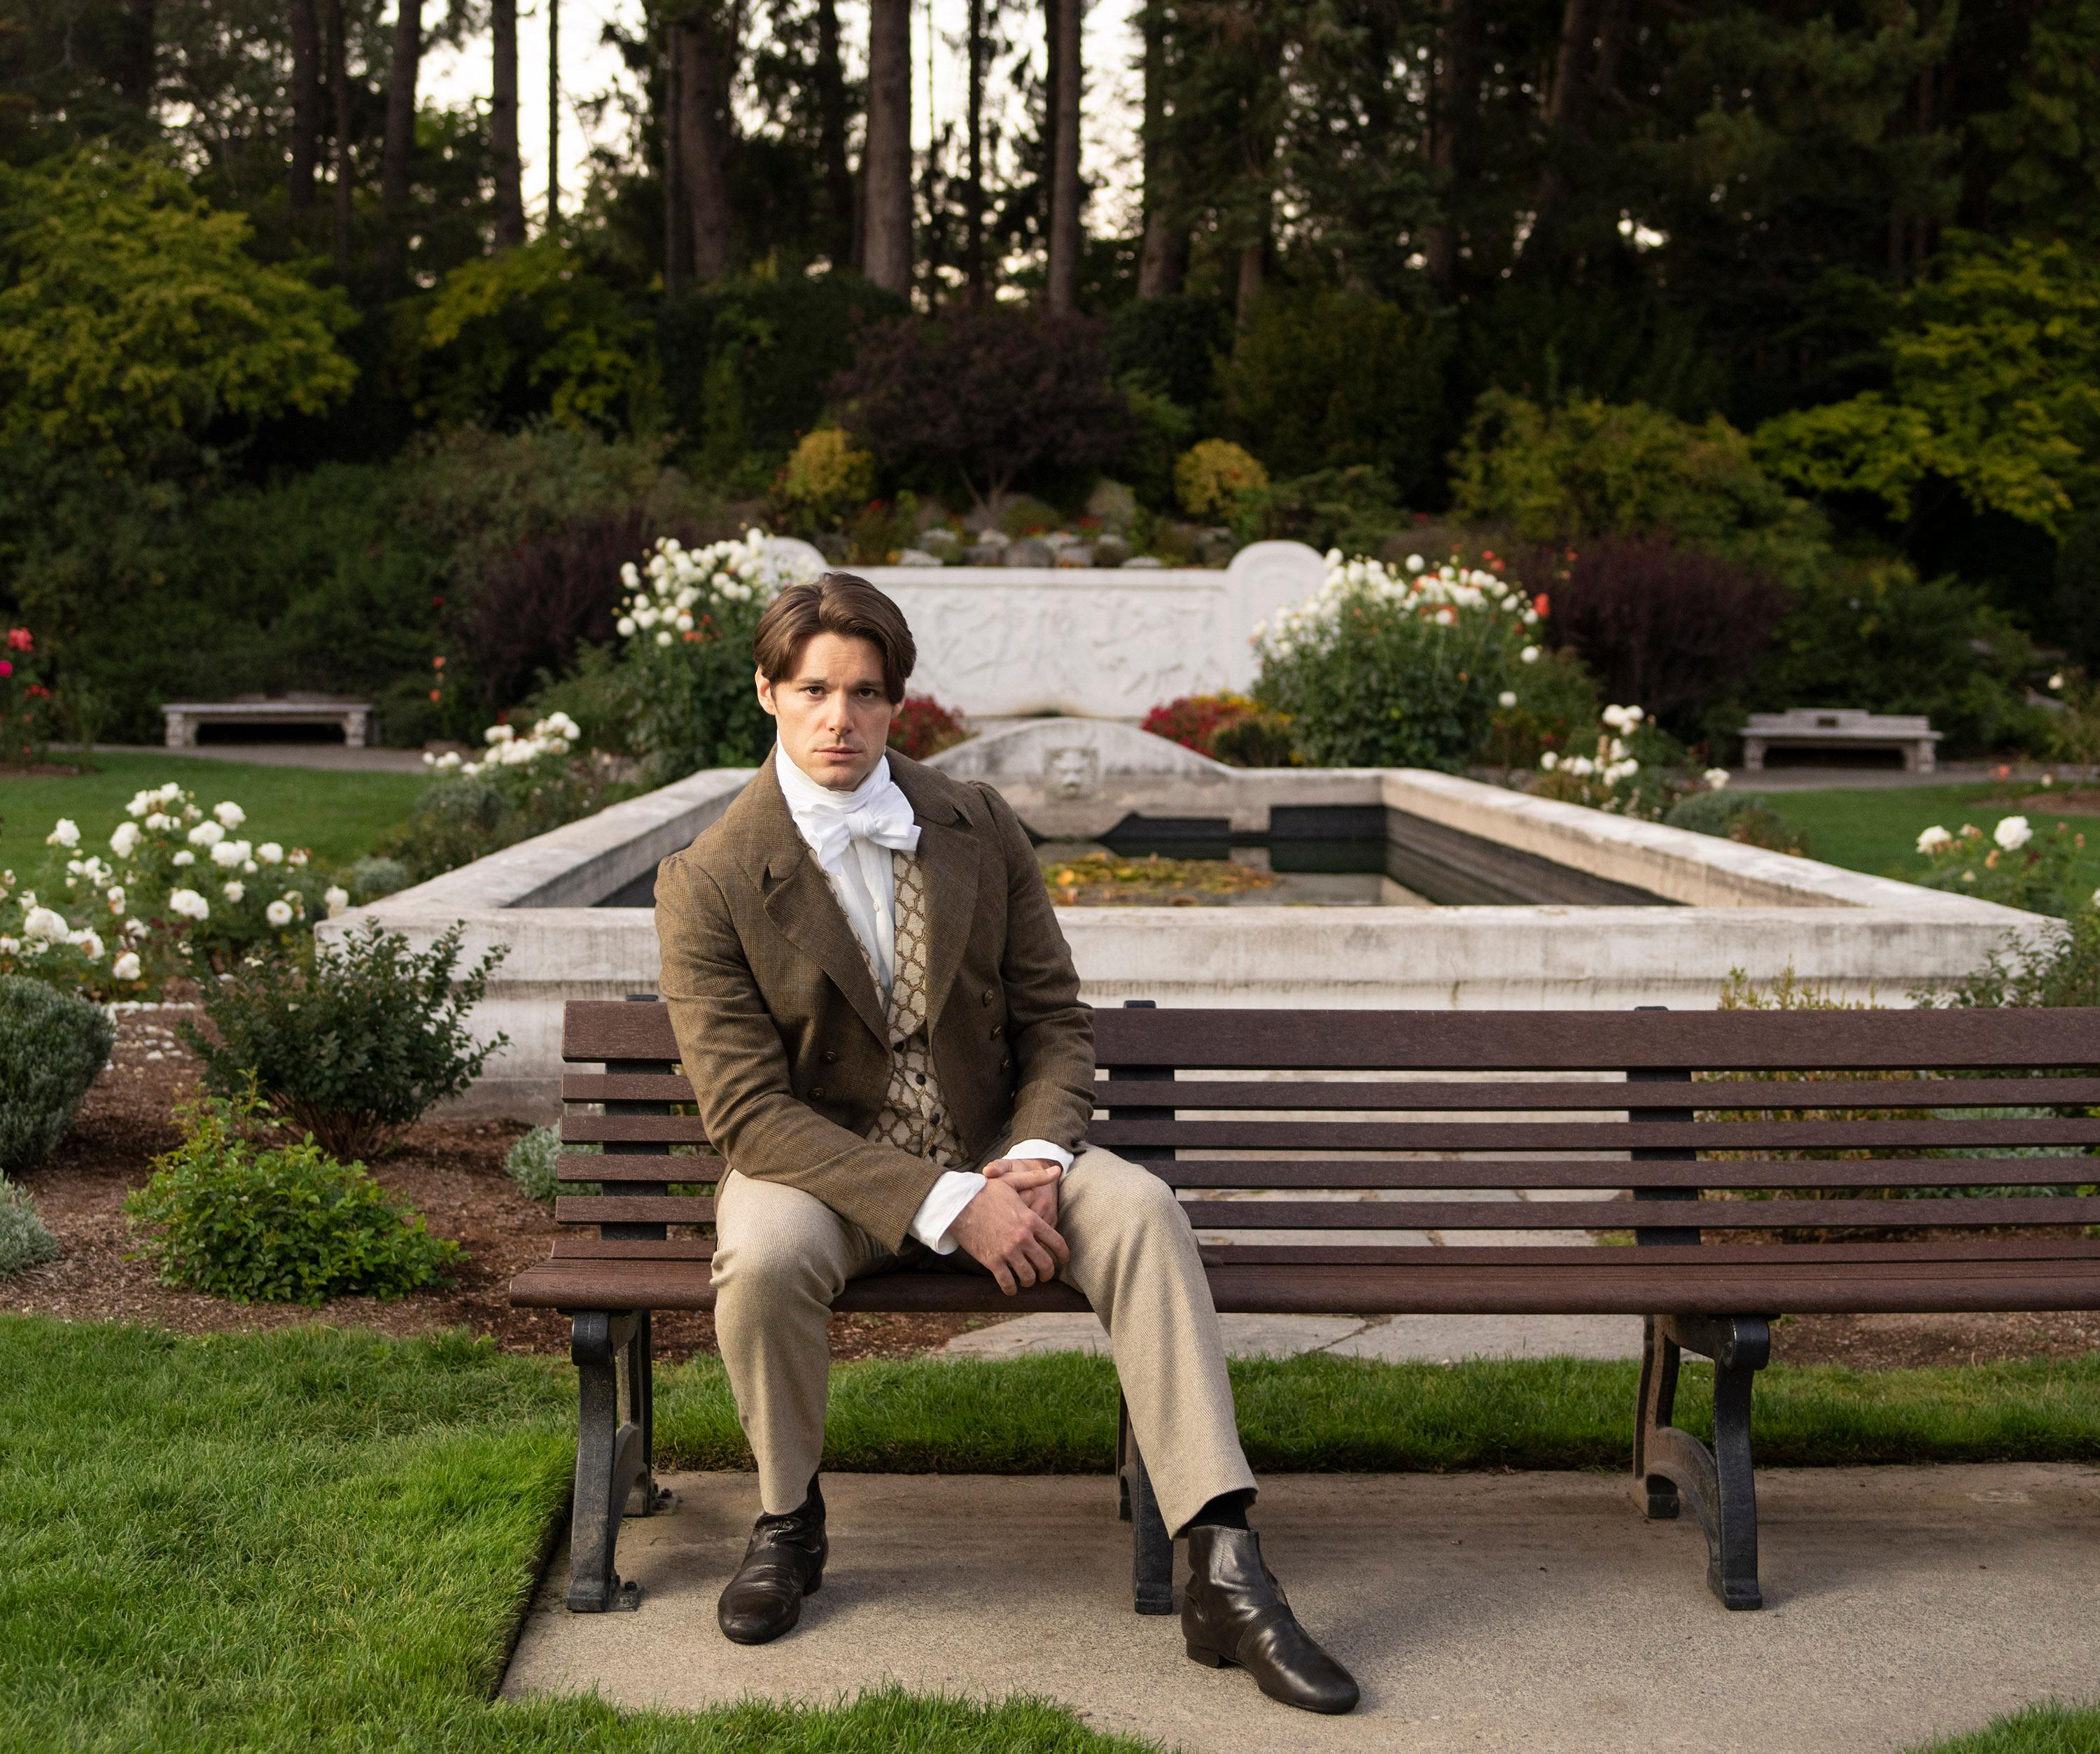 Steven Good stars as Mr. Darcy in 'Austen's Pride' at The 5th Avenue Theatre (Photo Credit: Mark Kitaoka)